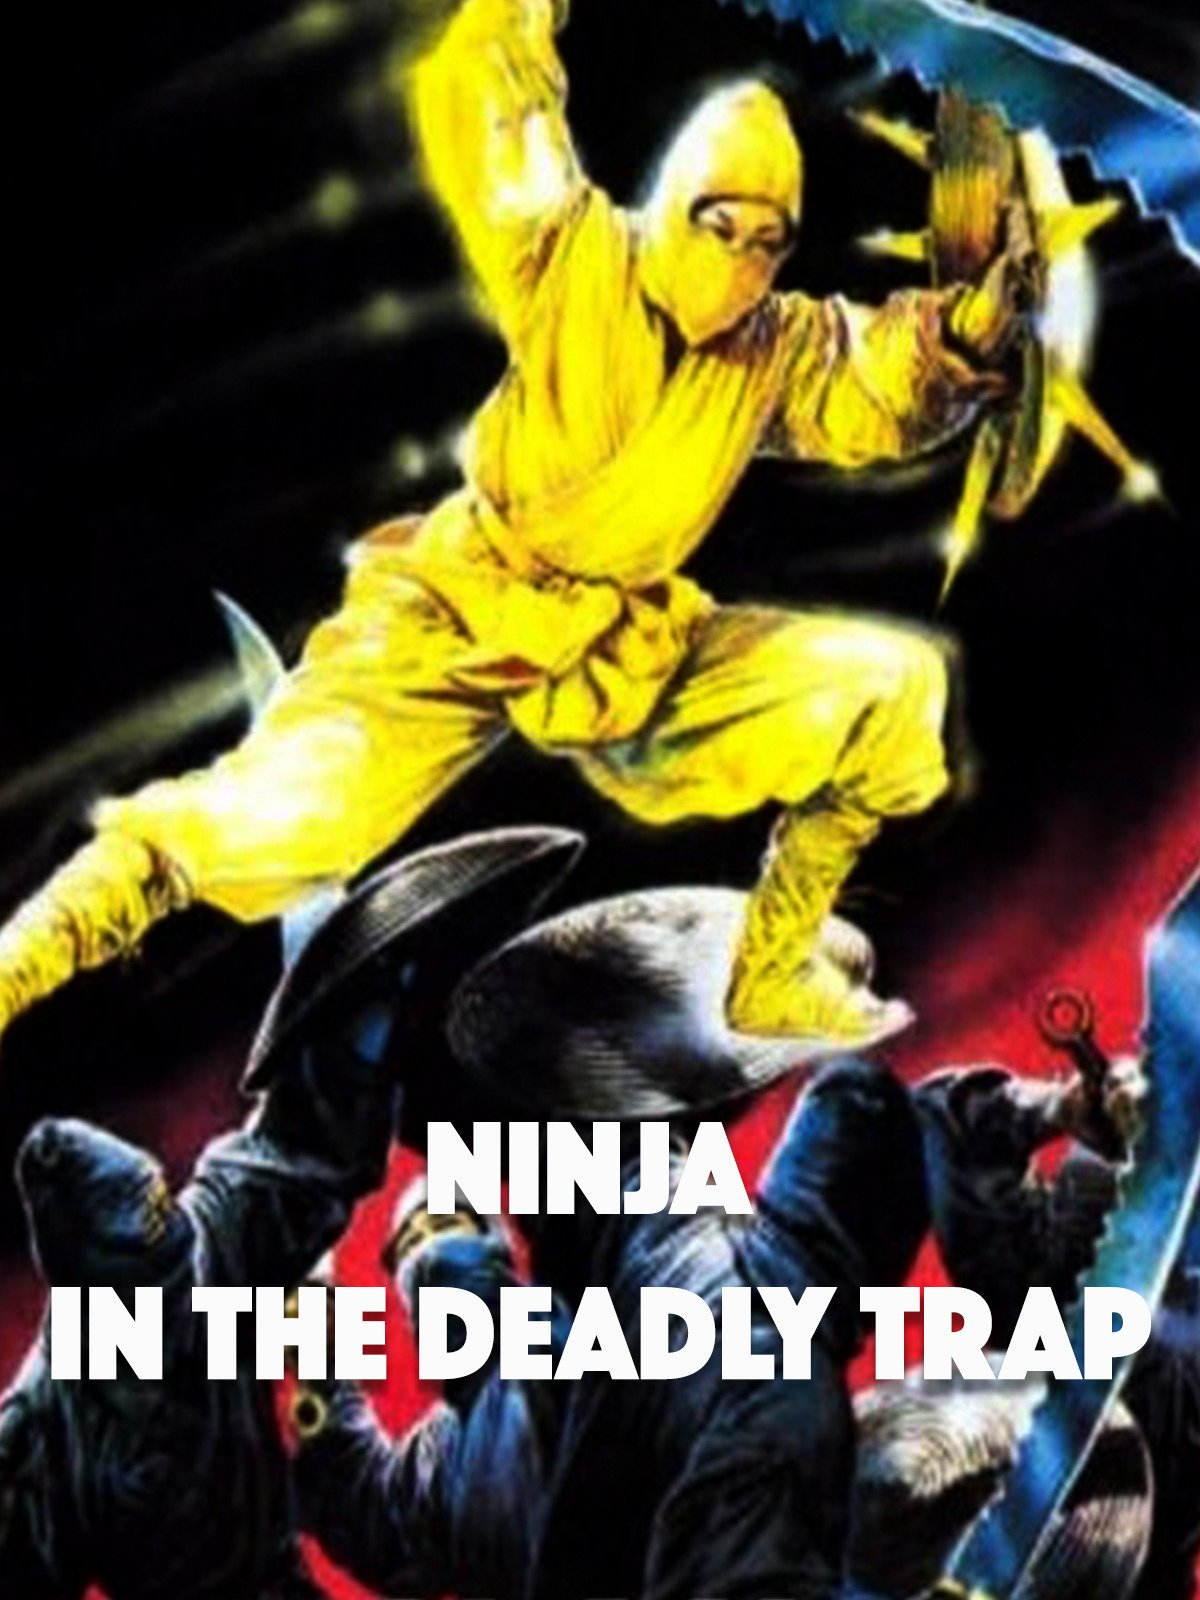 Amazon.com: Watch Ninja In The Deadly Trap | Prime Video